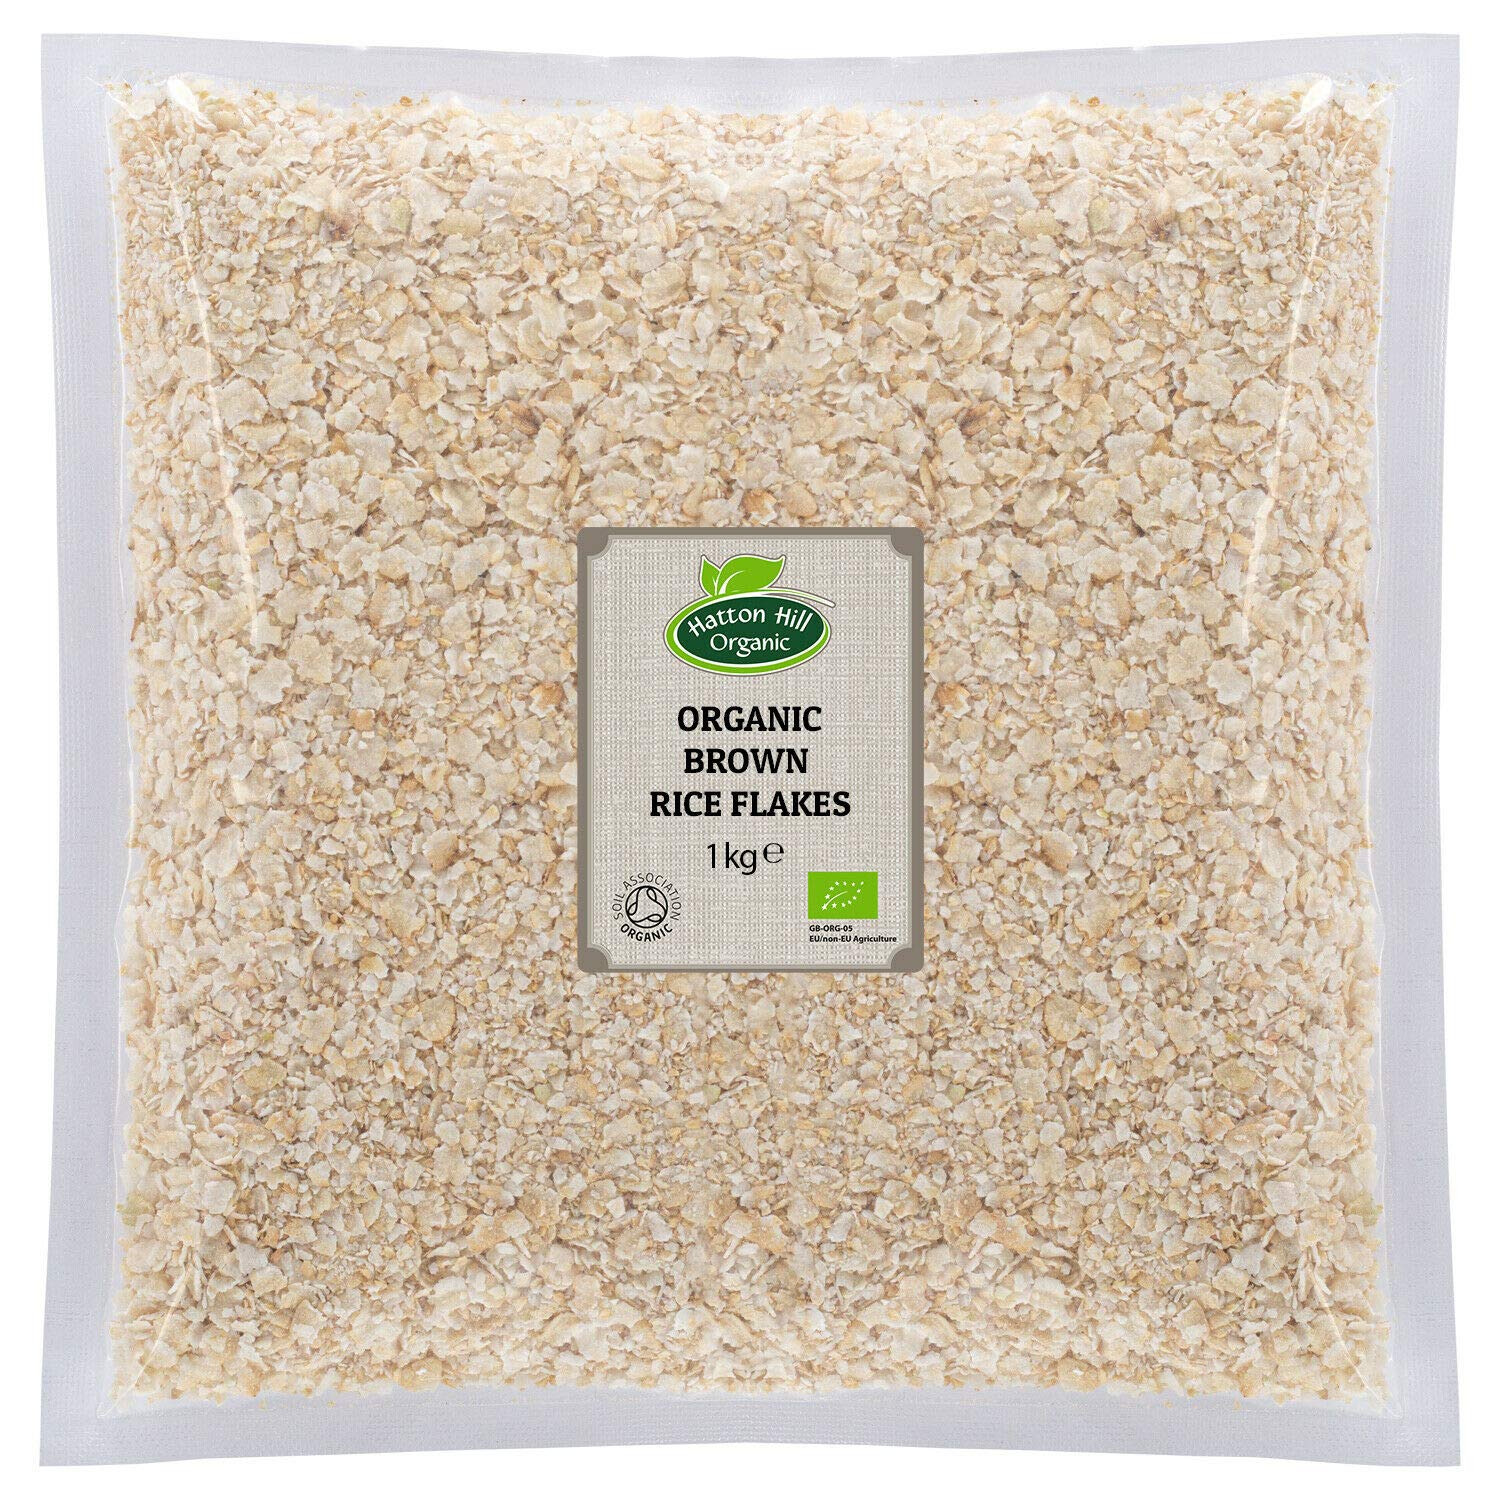 Organic Brown Rice Flakes (Gluten Free) 1kg by Hatton Hill Organic - Free UK Delivery